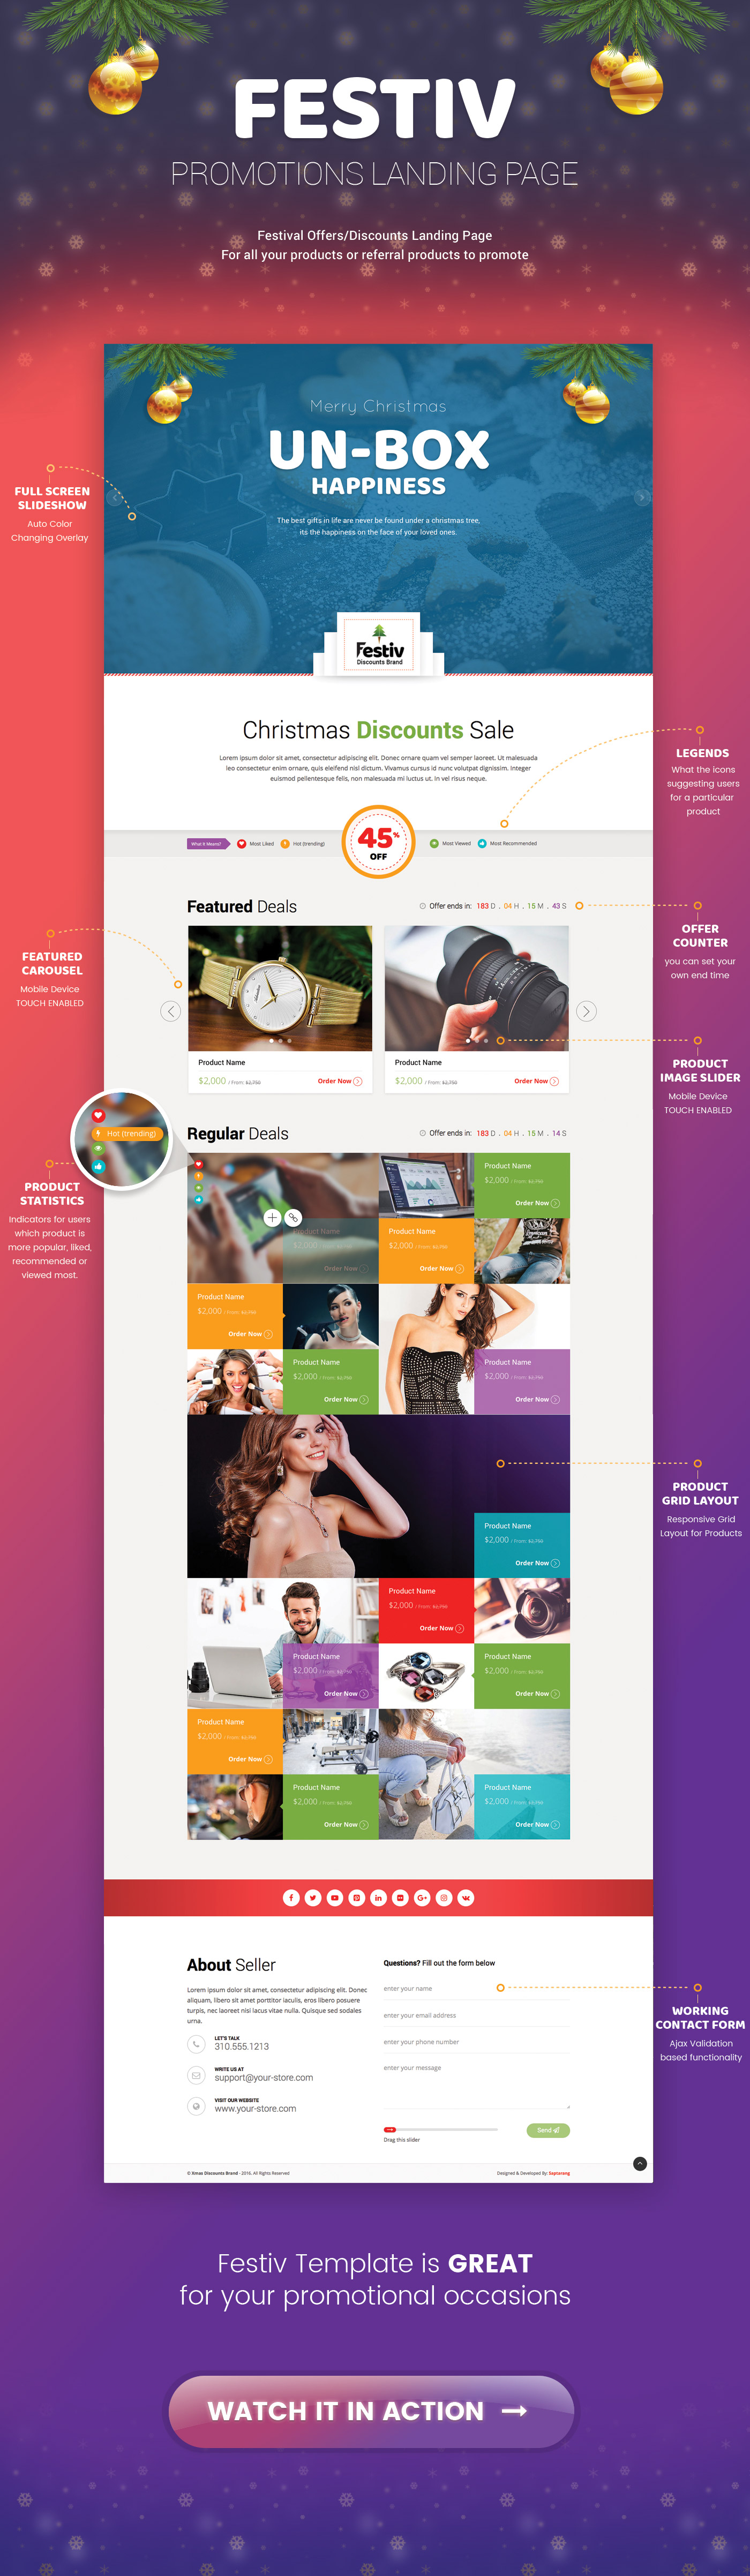 Festiv - Offer/Discount Landing Page by Saptarang